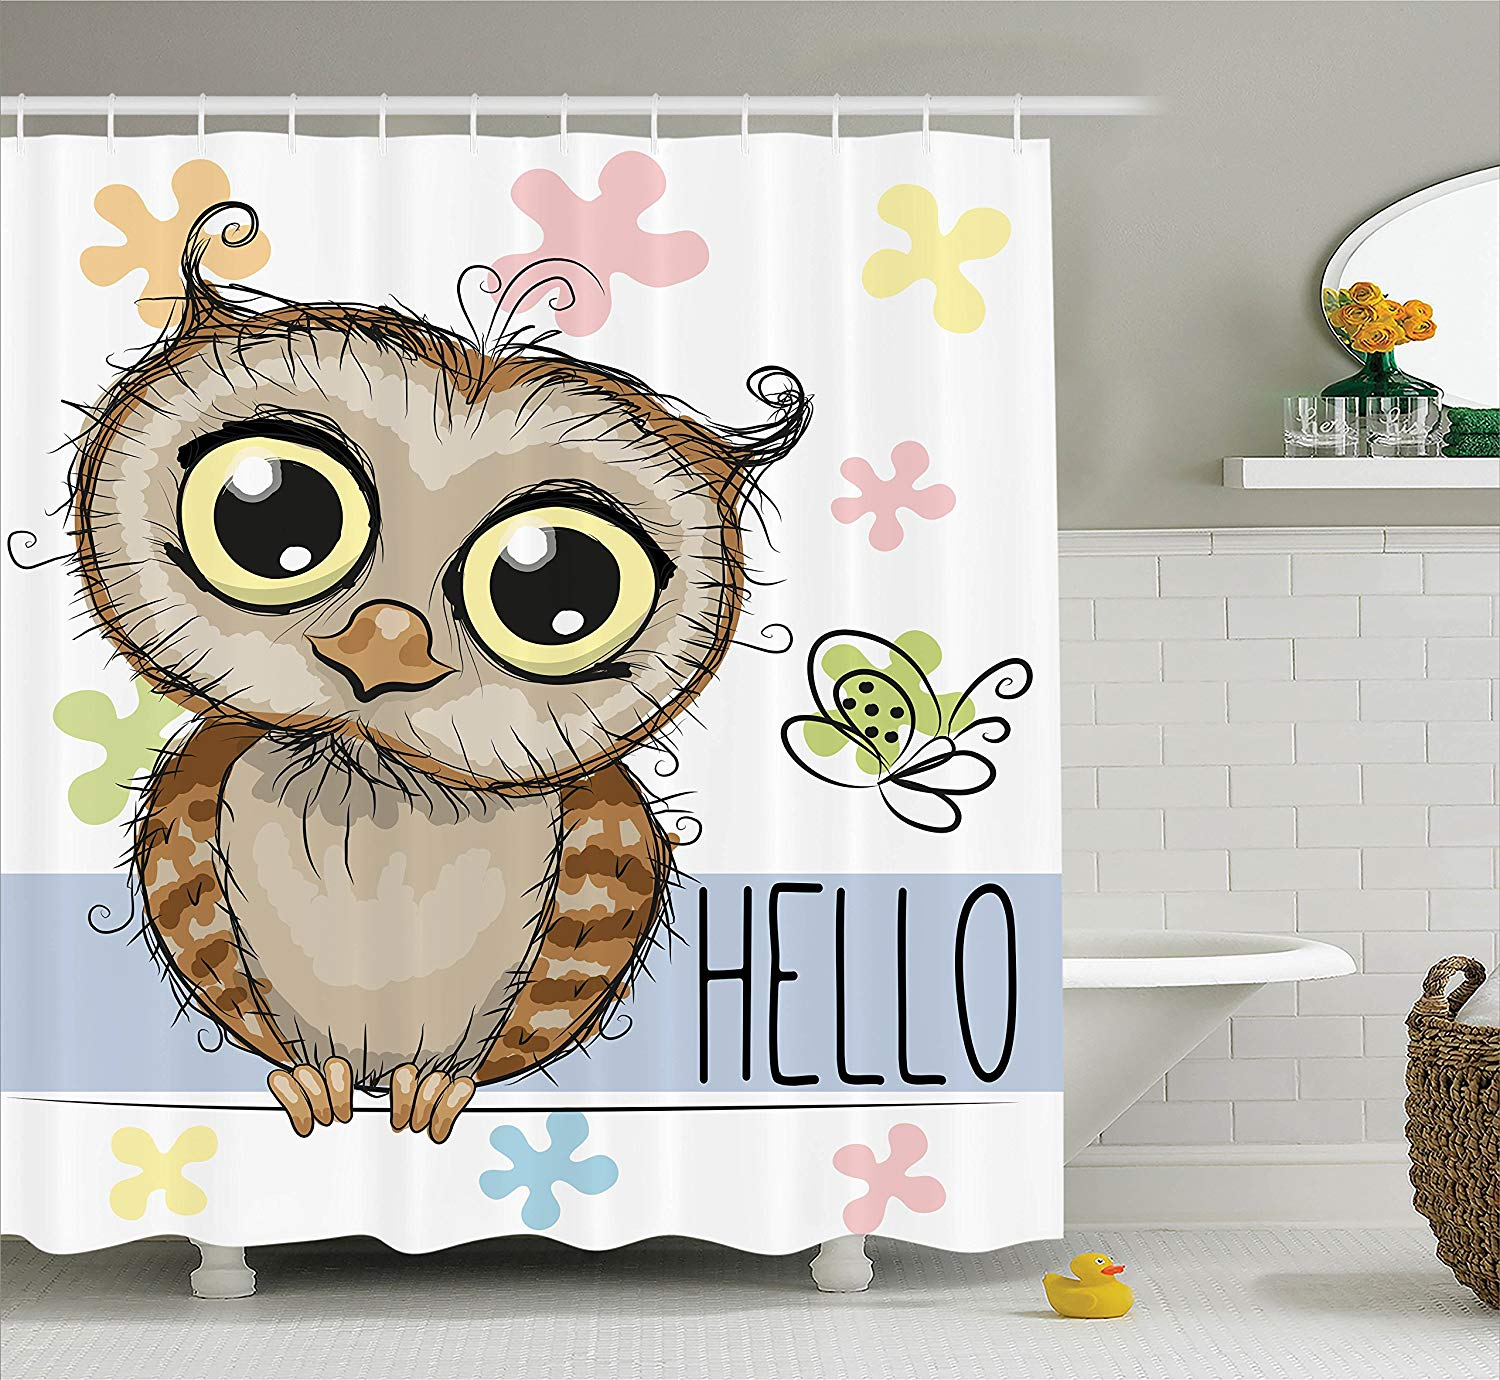 Us 12 8 44 Off Owl Shower Curtain Decor Cartoon Animal Butterfly On Floral Background With Hello Message Colorful Daisies Print Fabric Bathroom In